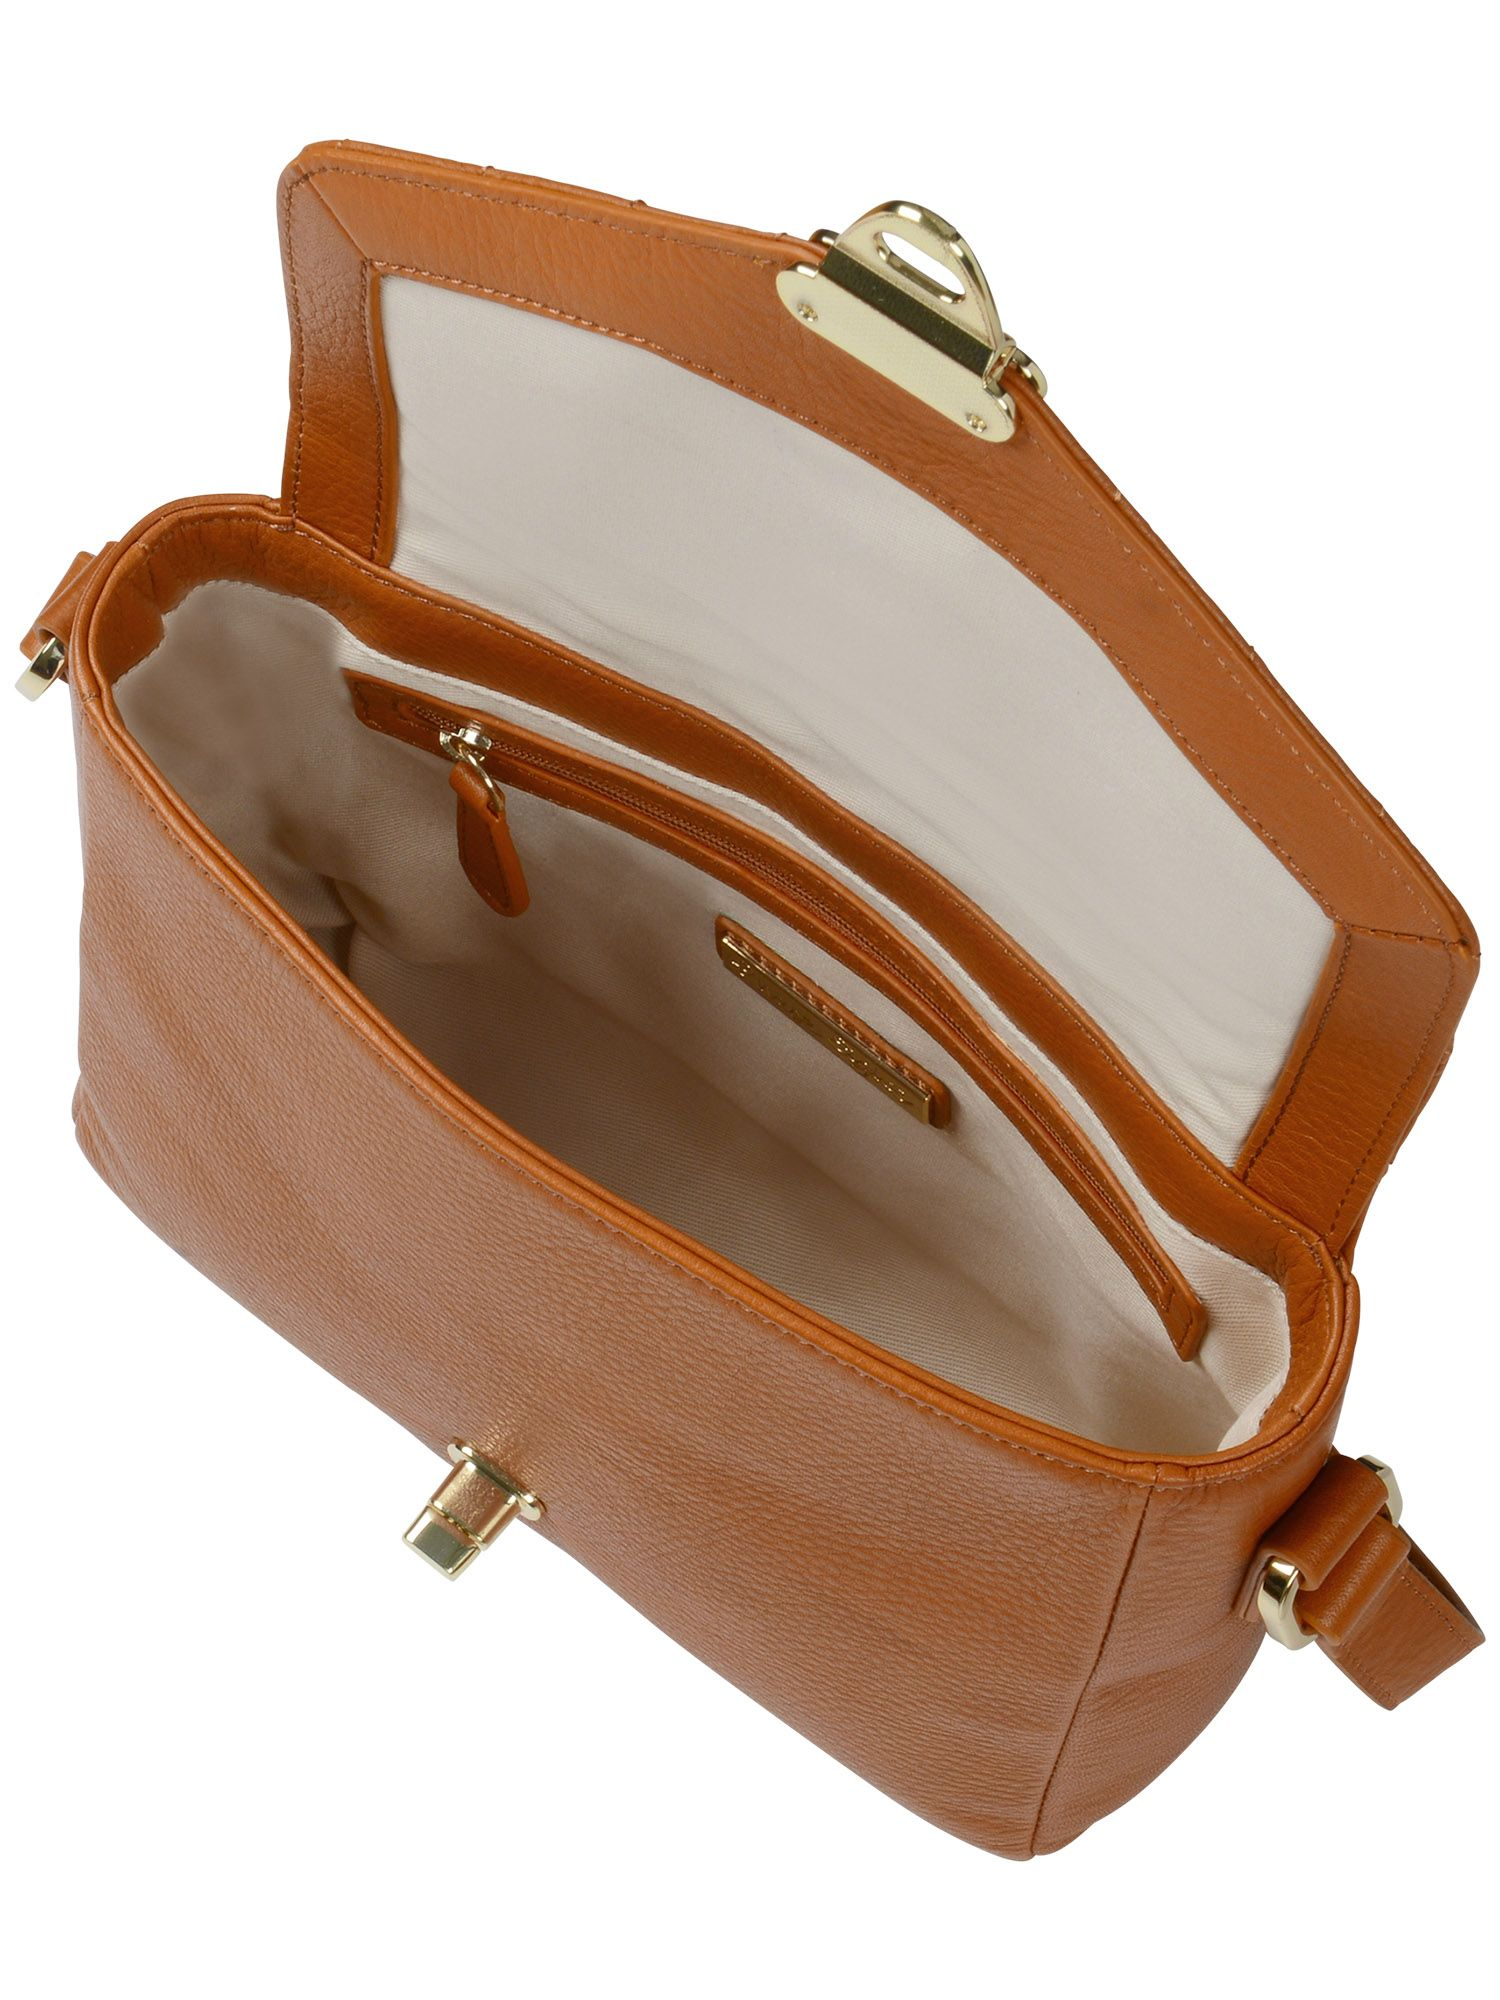 Estelle leather shoulder bag